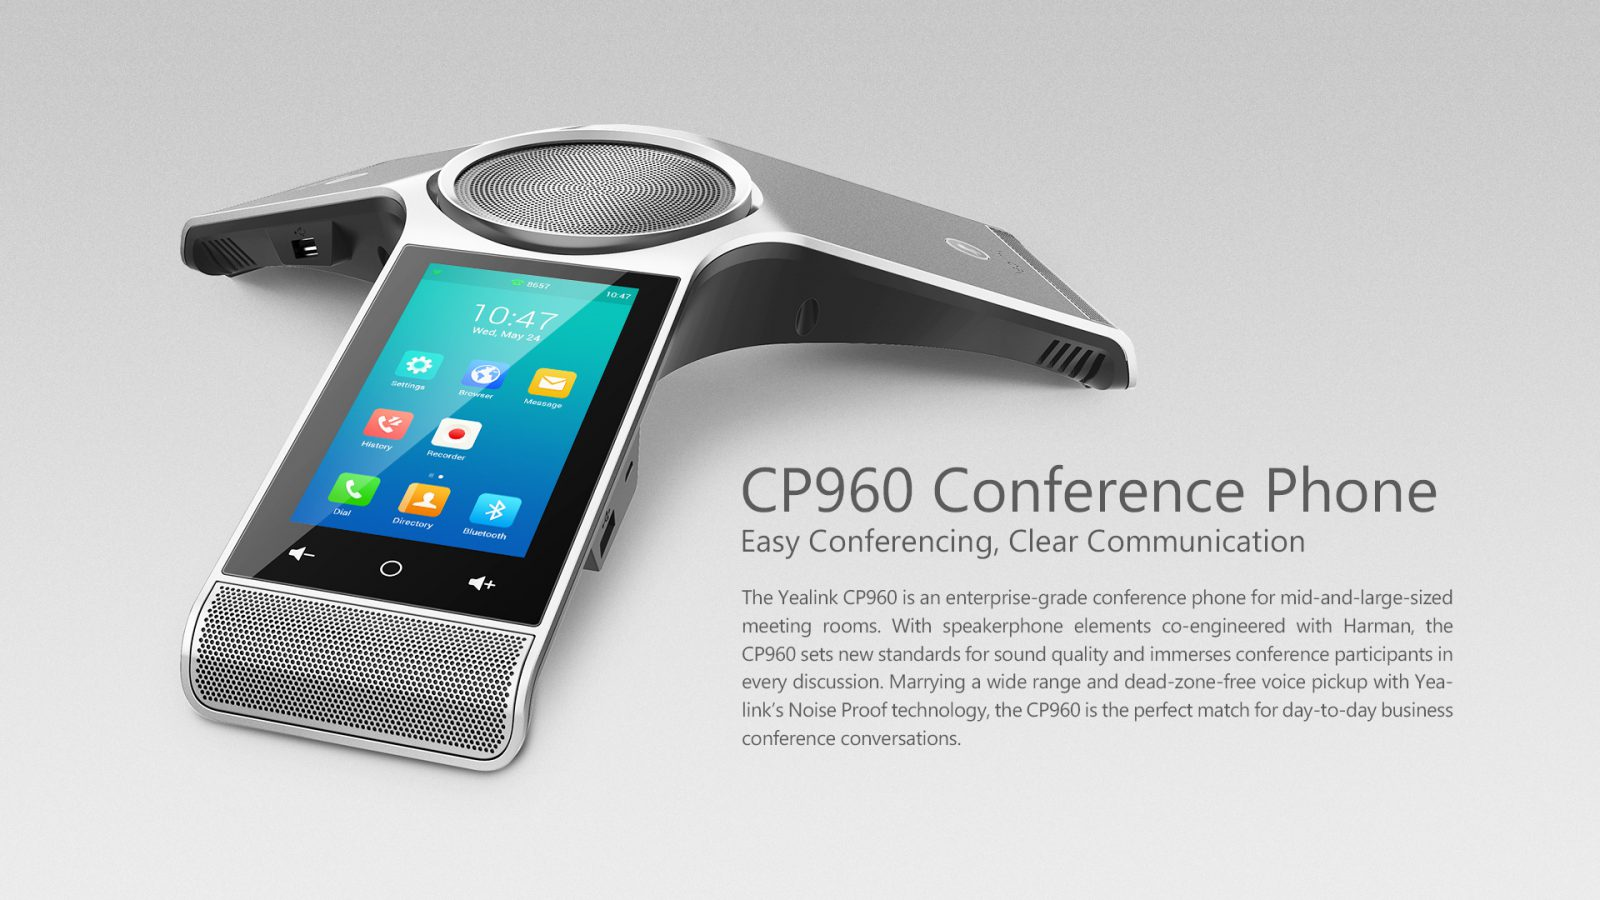 Yealink CP960 IP Conference Phone -Wireless Mic | Yealink Hong Kong Distributor - Sipmax Technology Group - Contact us now : www.sipmaxhk.com